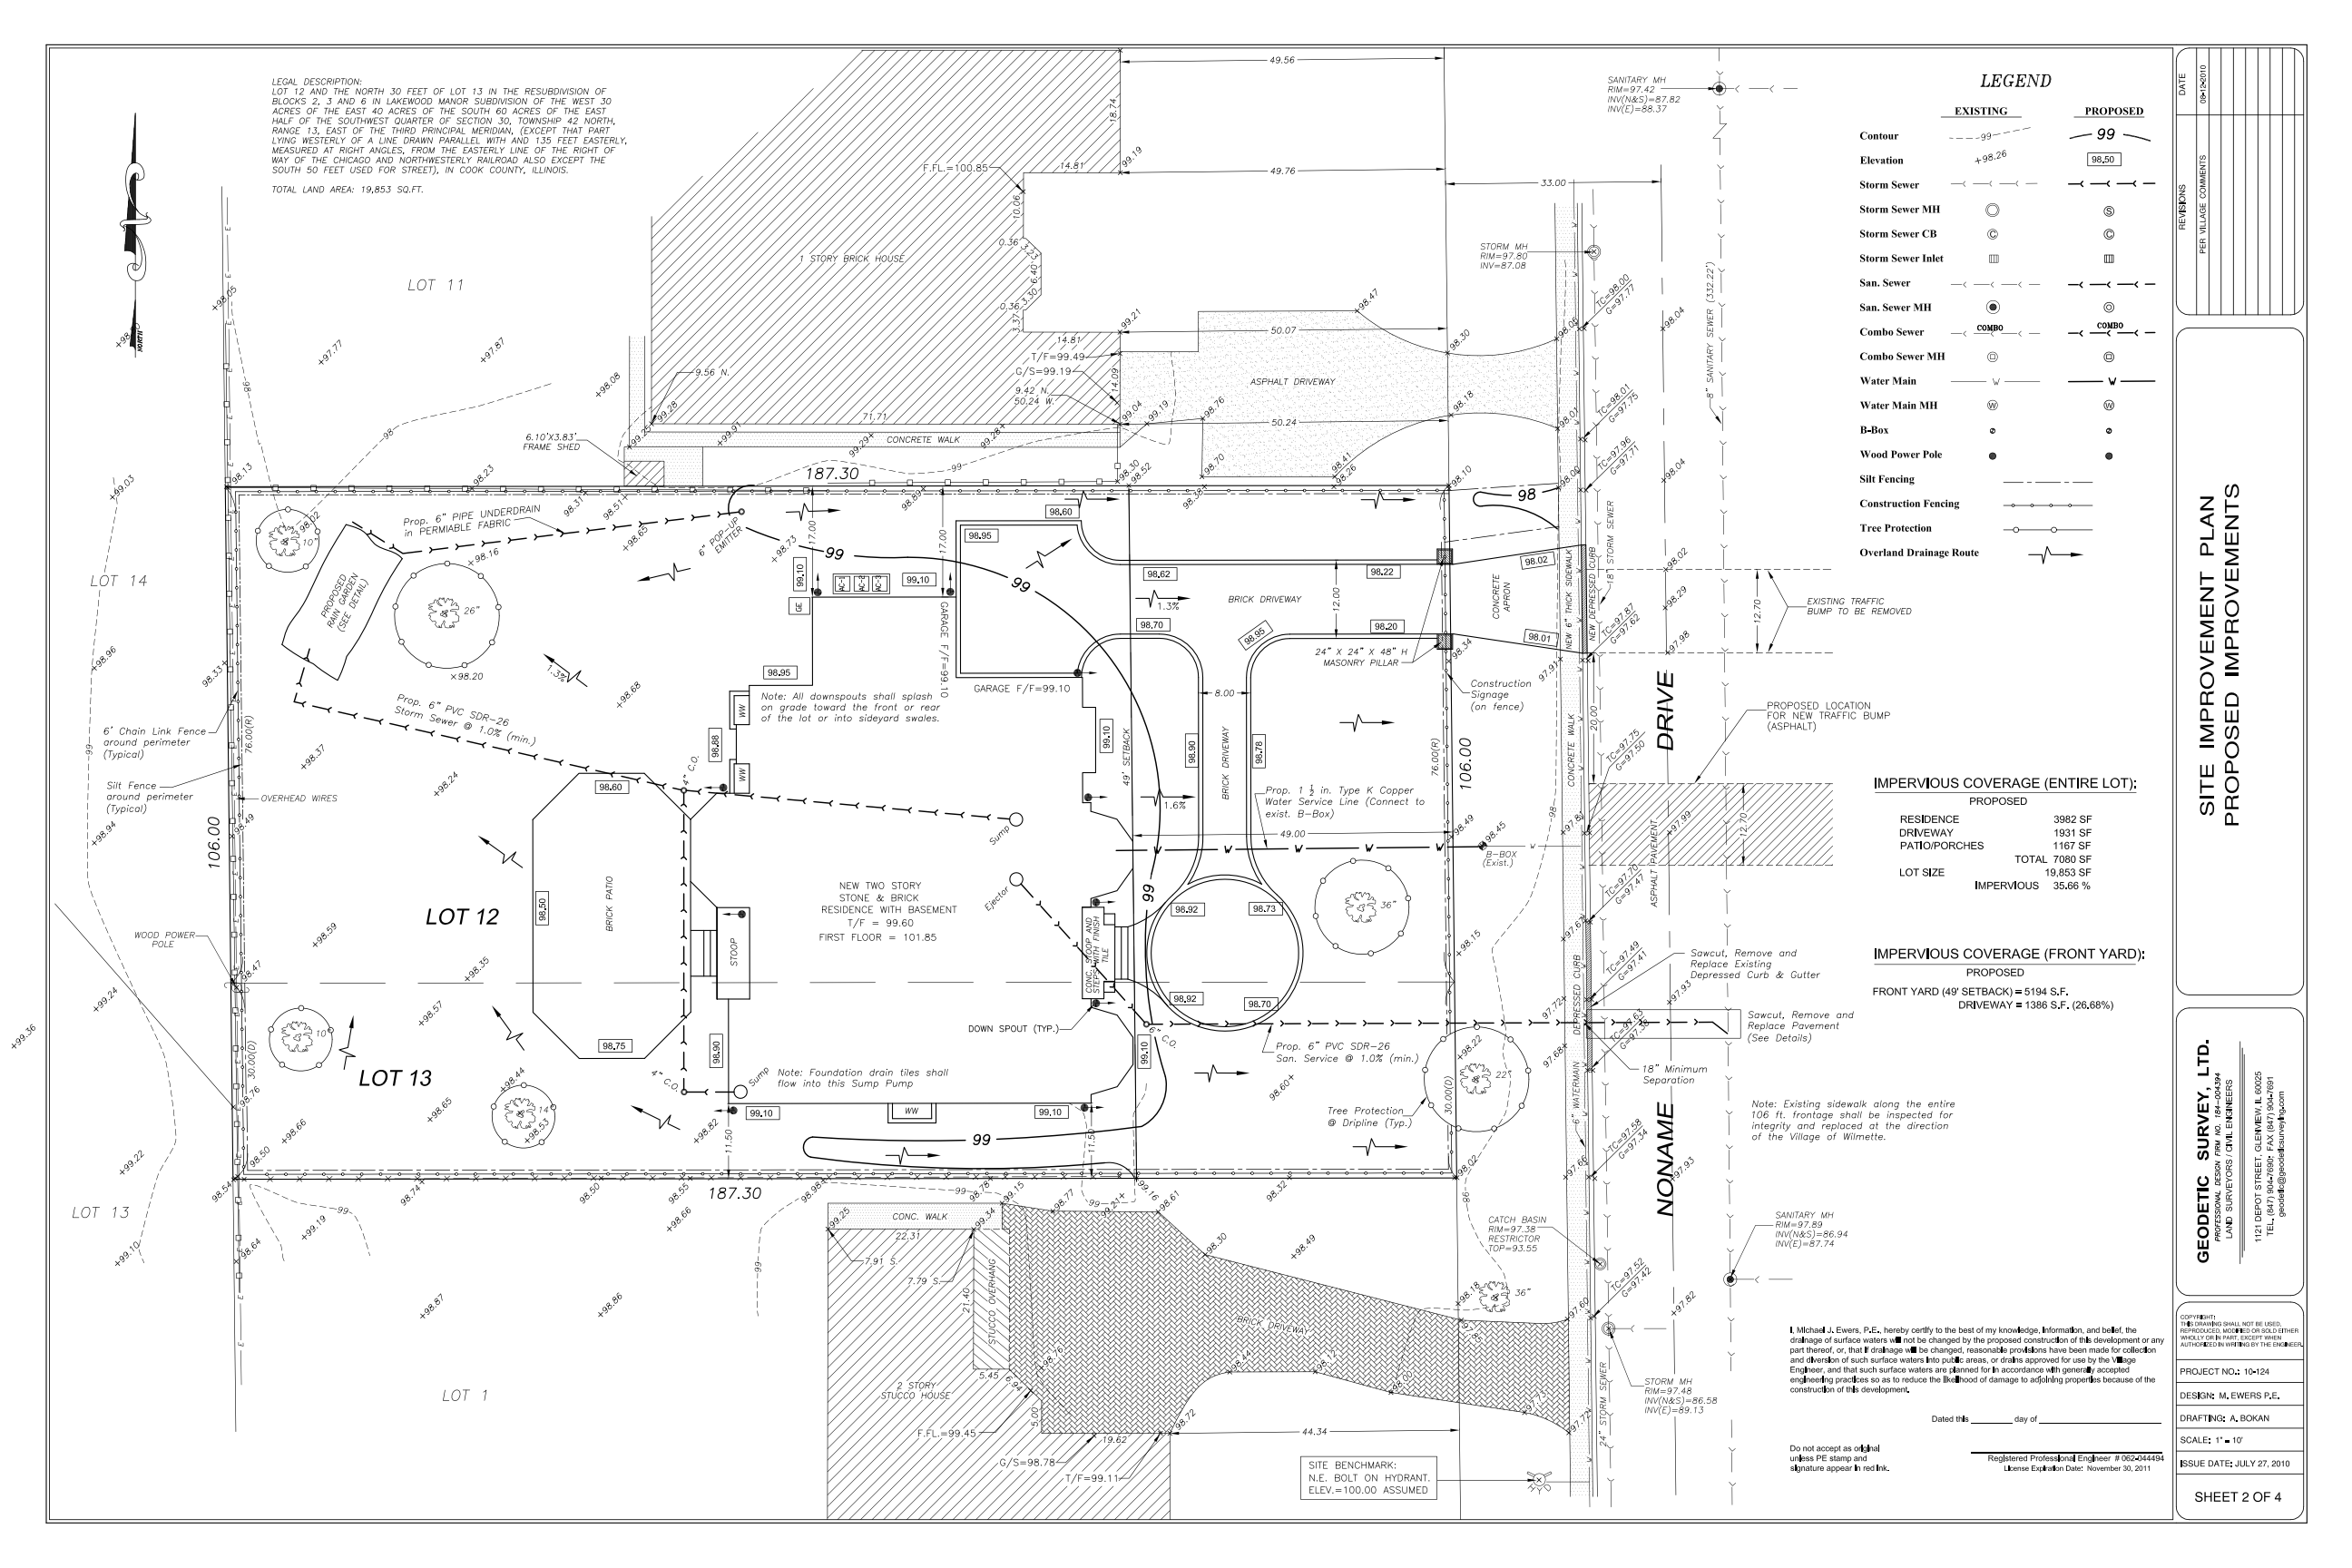 SITE IMPROVEMENT PLAN_001